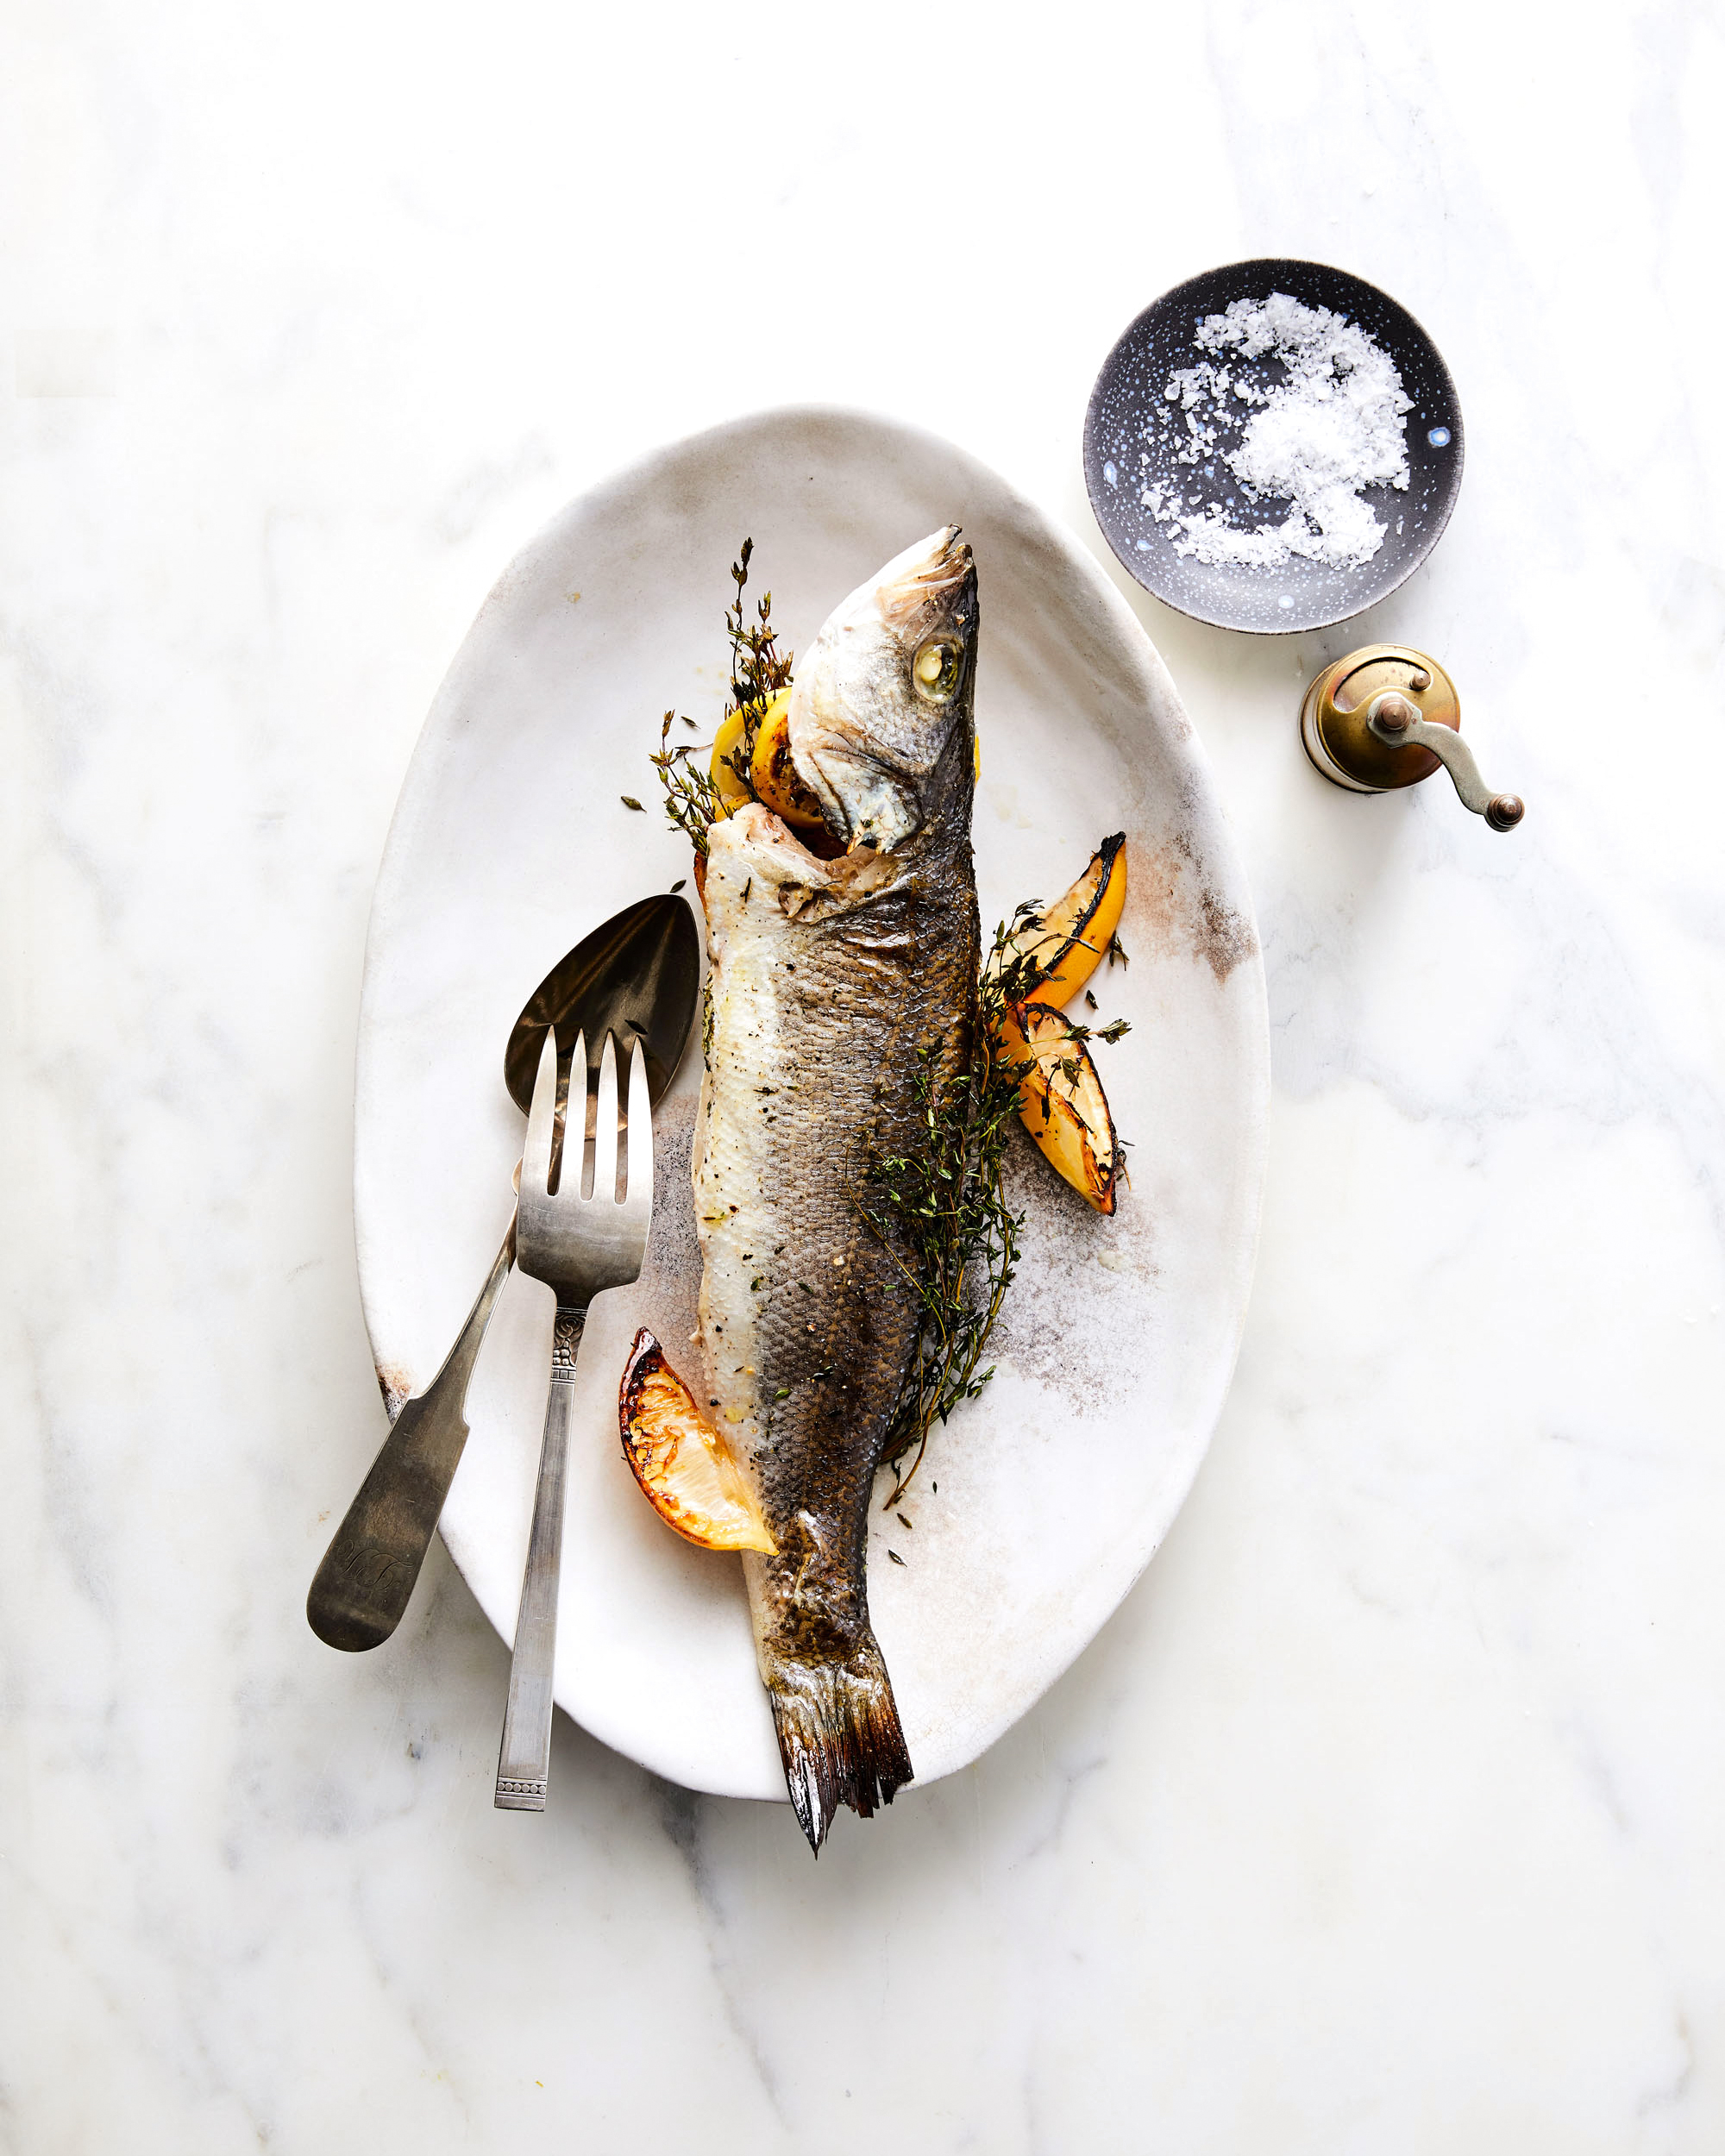 Whole-Roasted Branzino with Lemon and Thyme on plate with lemon wedges and silverware